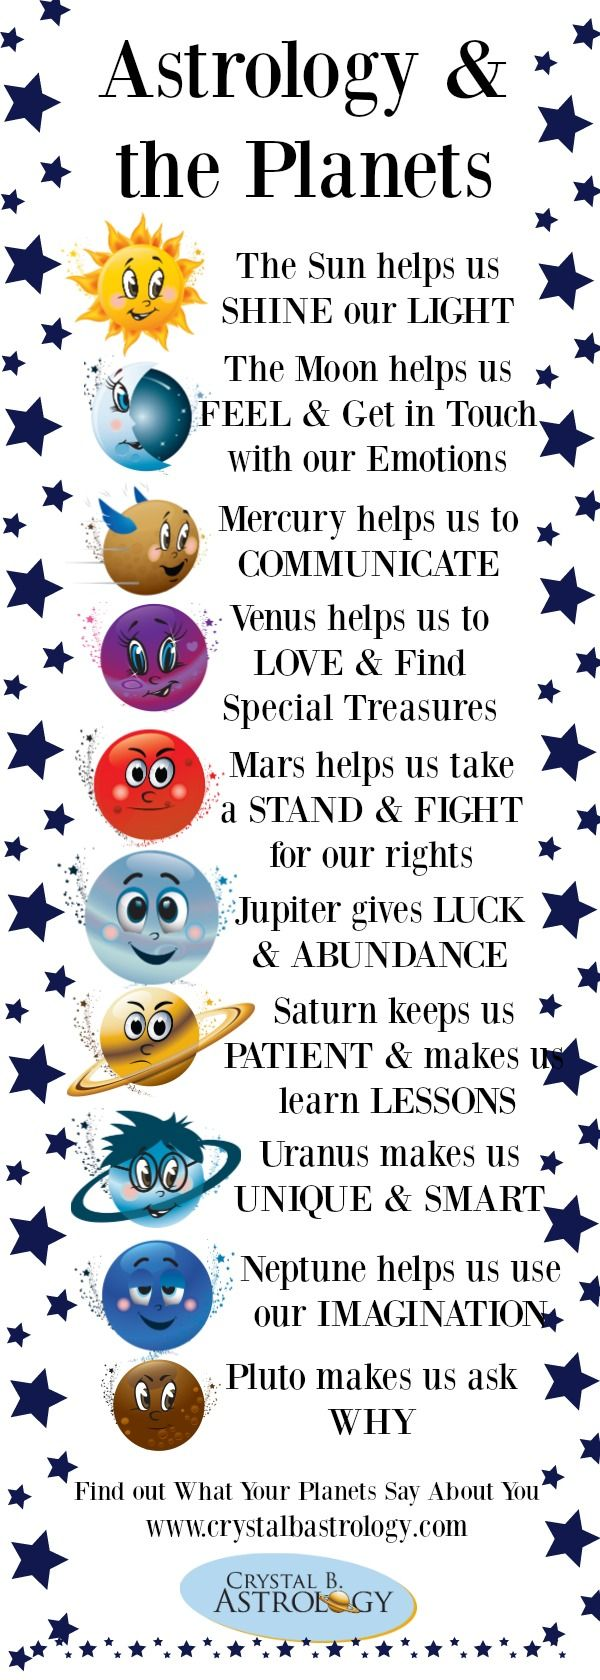 1074 best astrology images on pinterest astrology facts and truths crystal bs spin on how astrology works nvjuhfo Choice Image